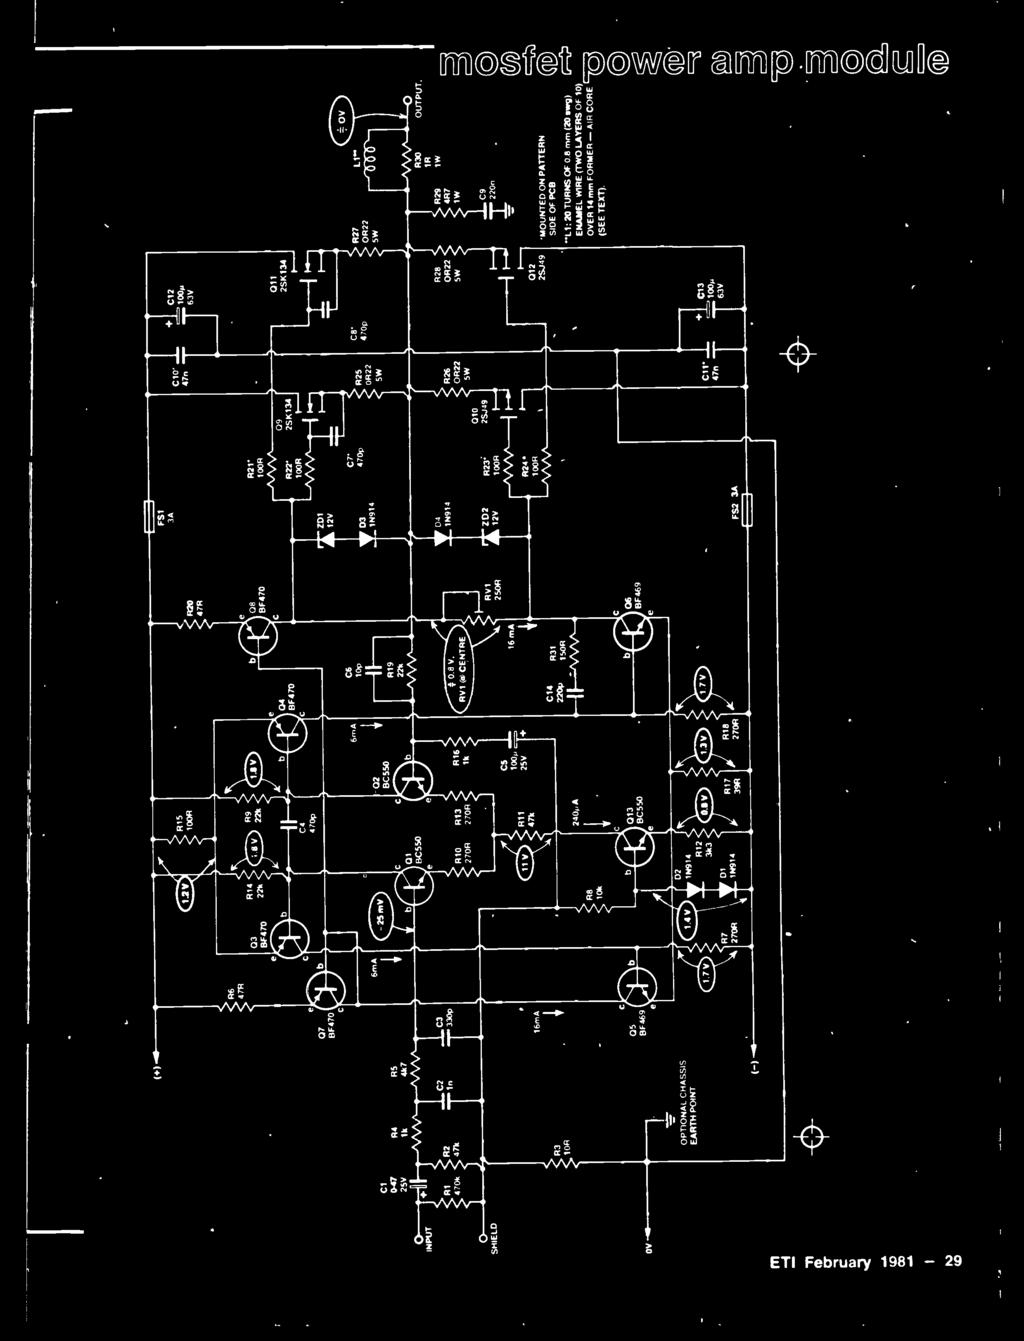 Ile Stereo Amp Distortion International Today Electronics Dog Repeller Schematics Needed And More 2sk134 F R27 0522 5w L1 530 Output